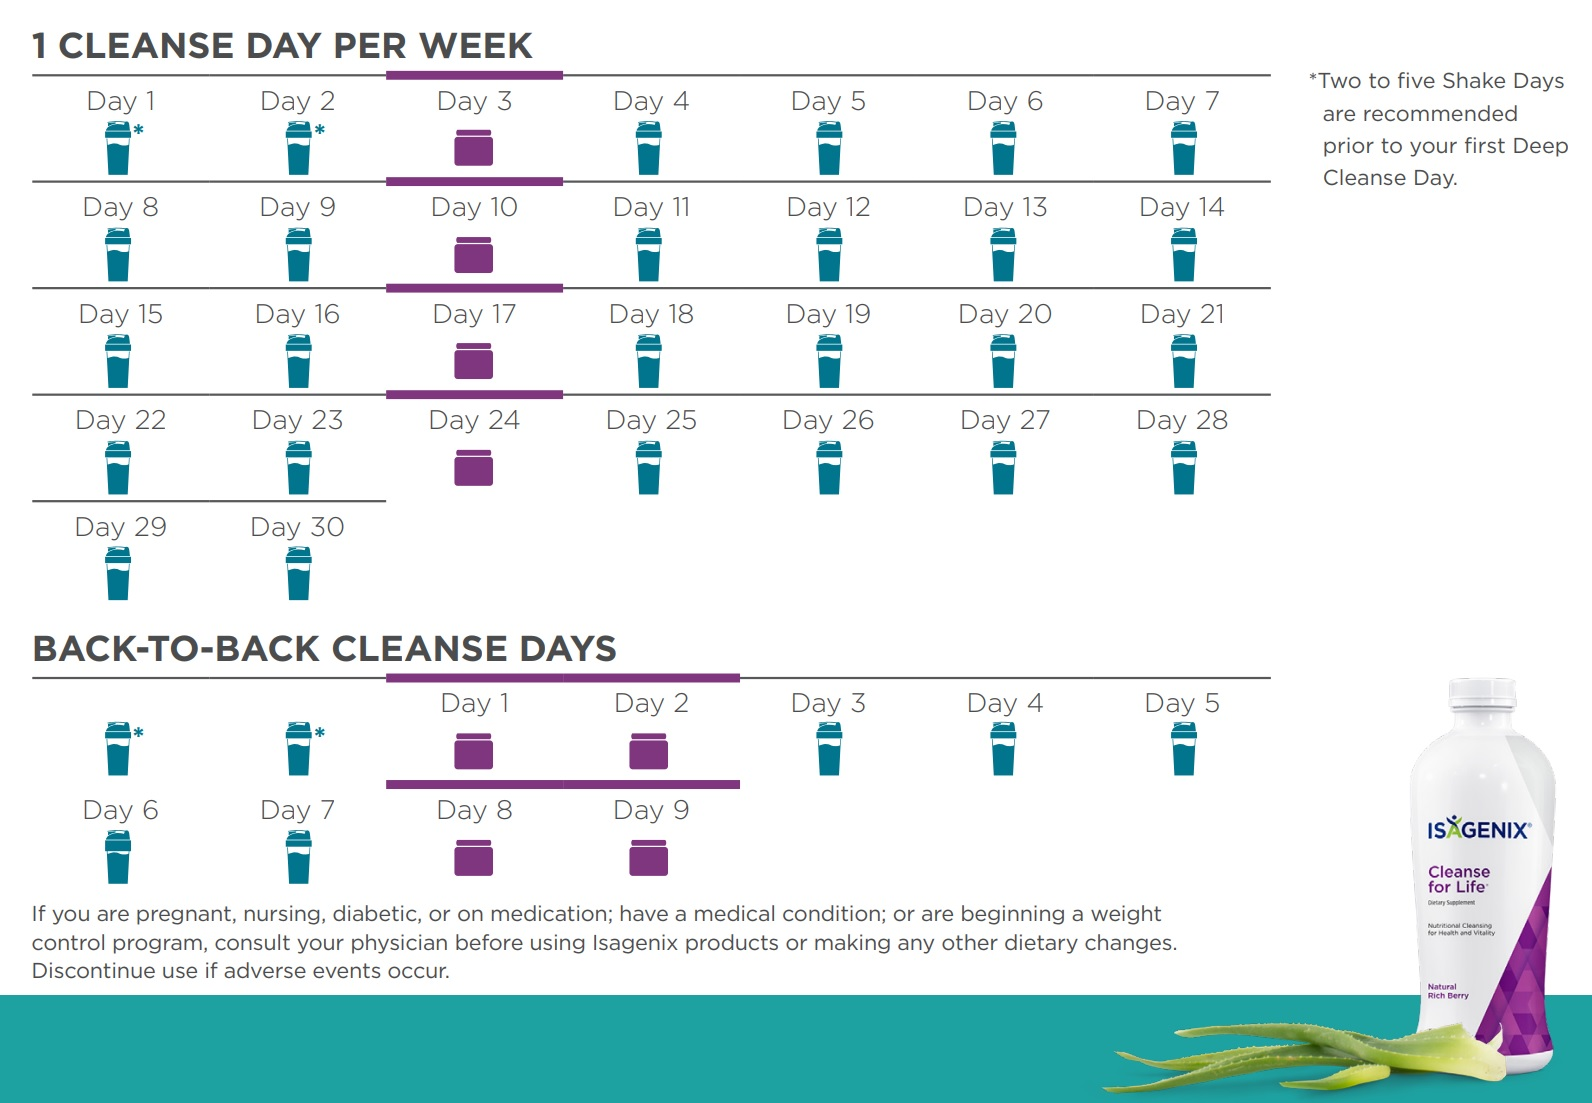 Your cleanse day schedule can consist of one cleanse day a week, or back to back cleanse days